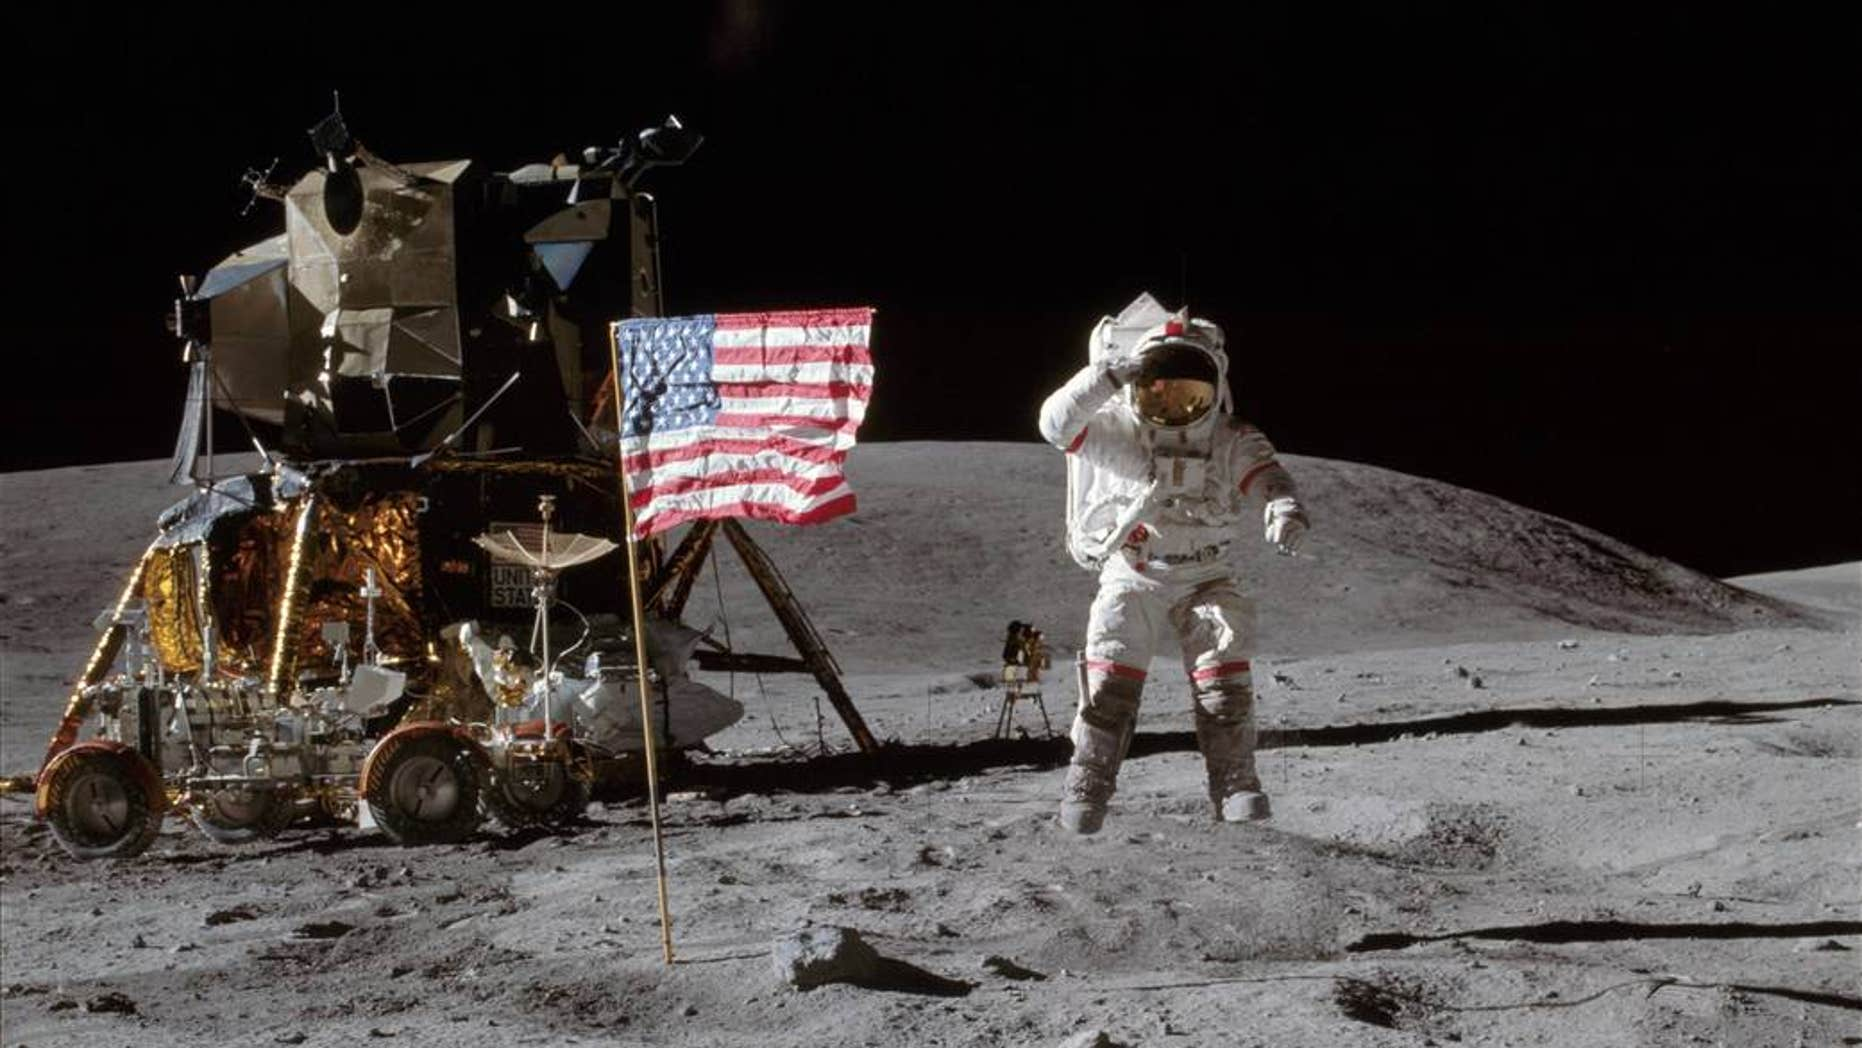 NASA astronaut John W. Young, commander of the Apollo 16 lunar landing mission, is pictured here with the American flag on the surface of the moon. The low-gravity environment allowed him to leap from the lunar surface.